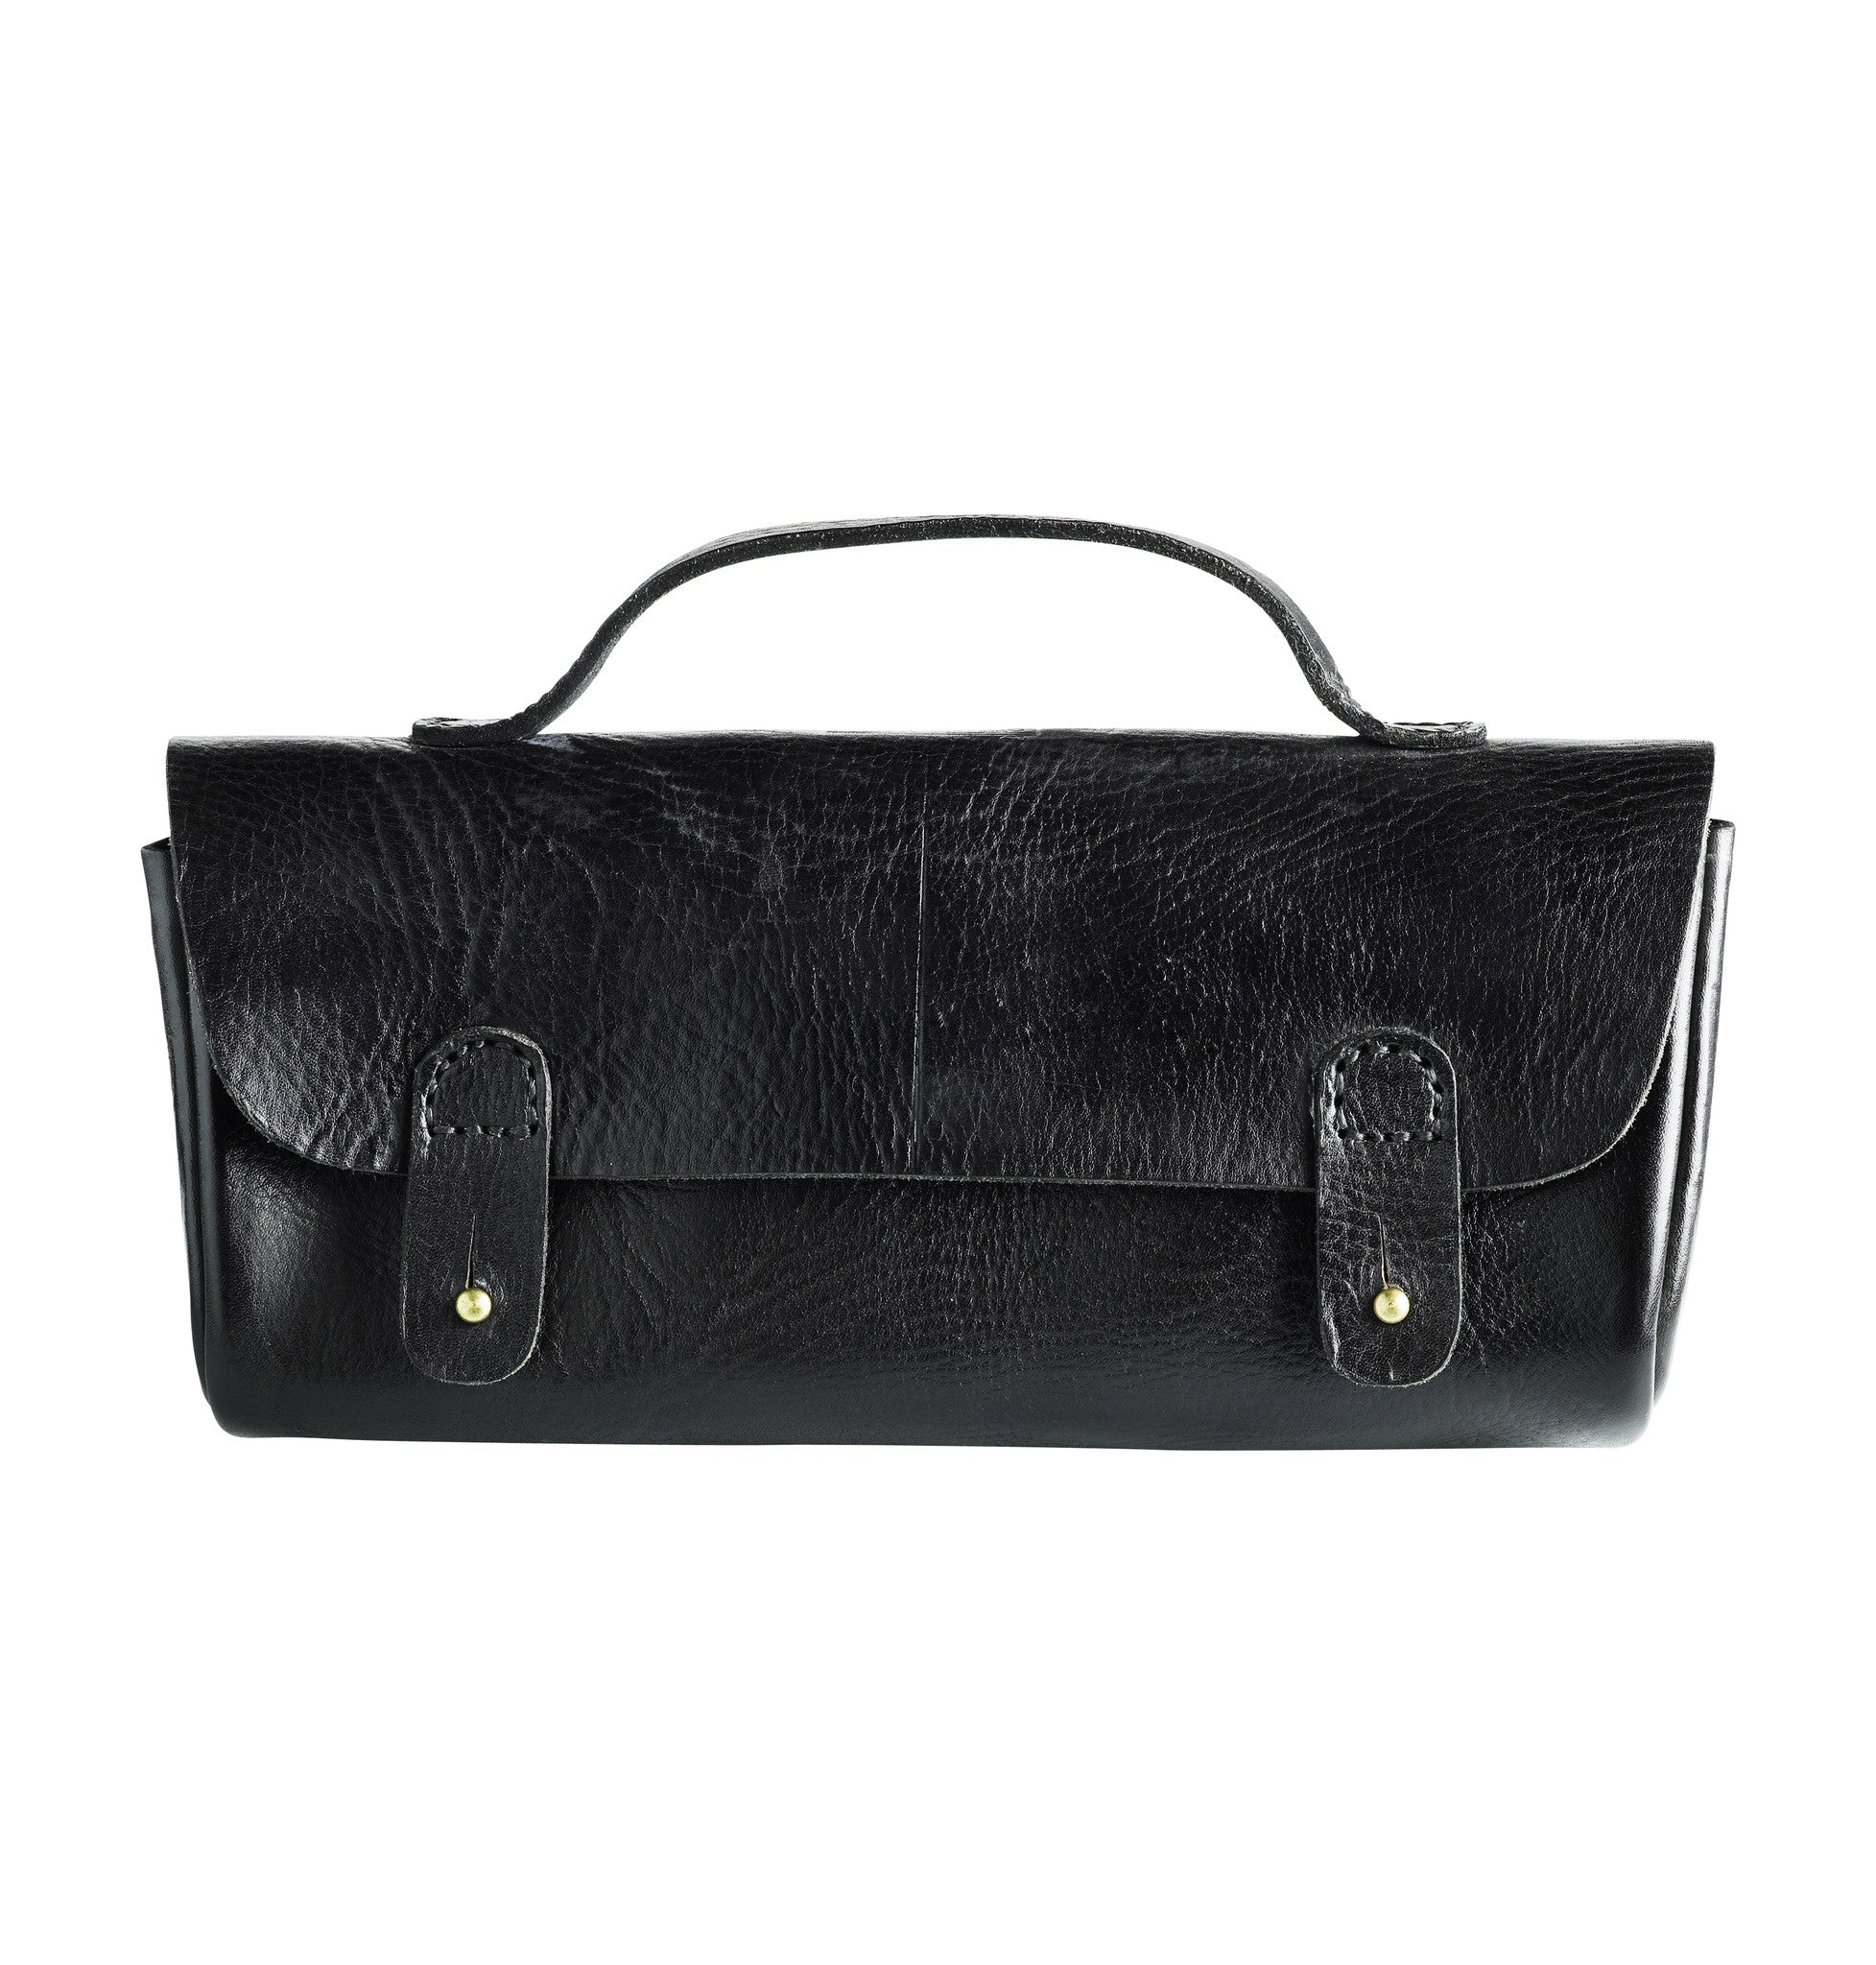 Small leather hand bag - Black